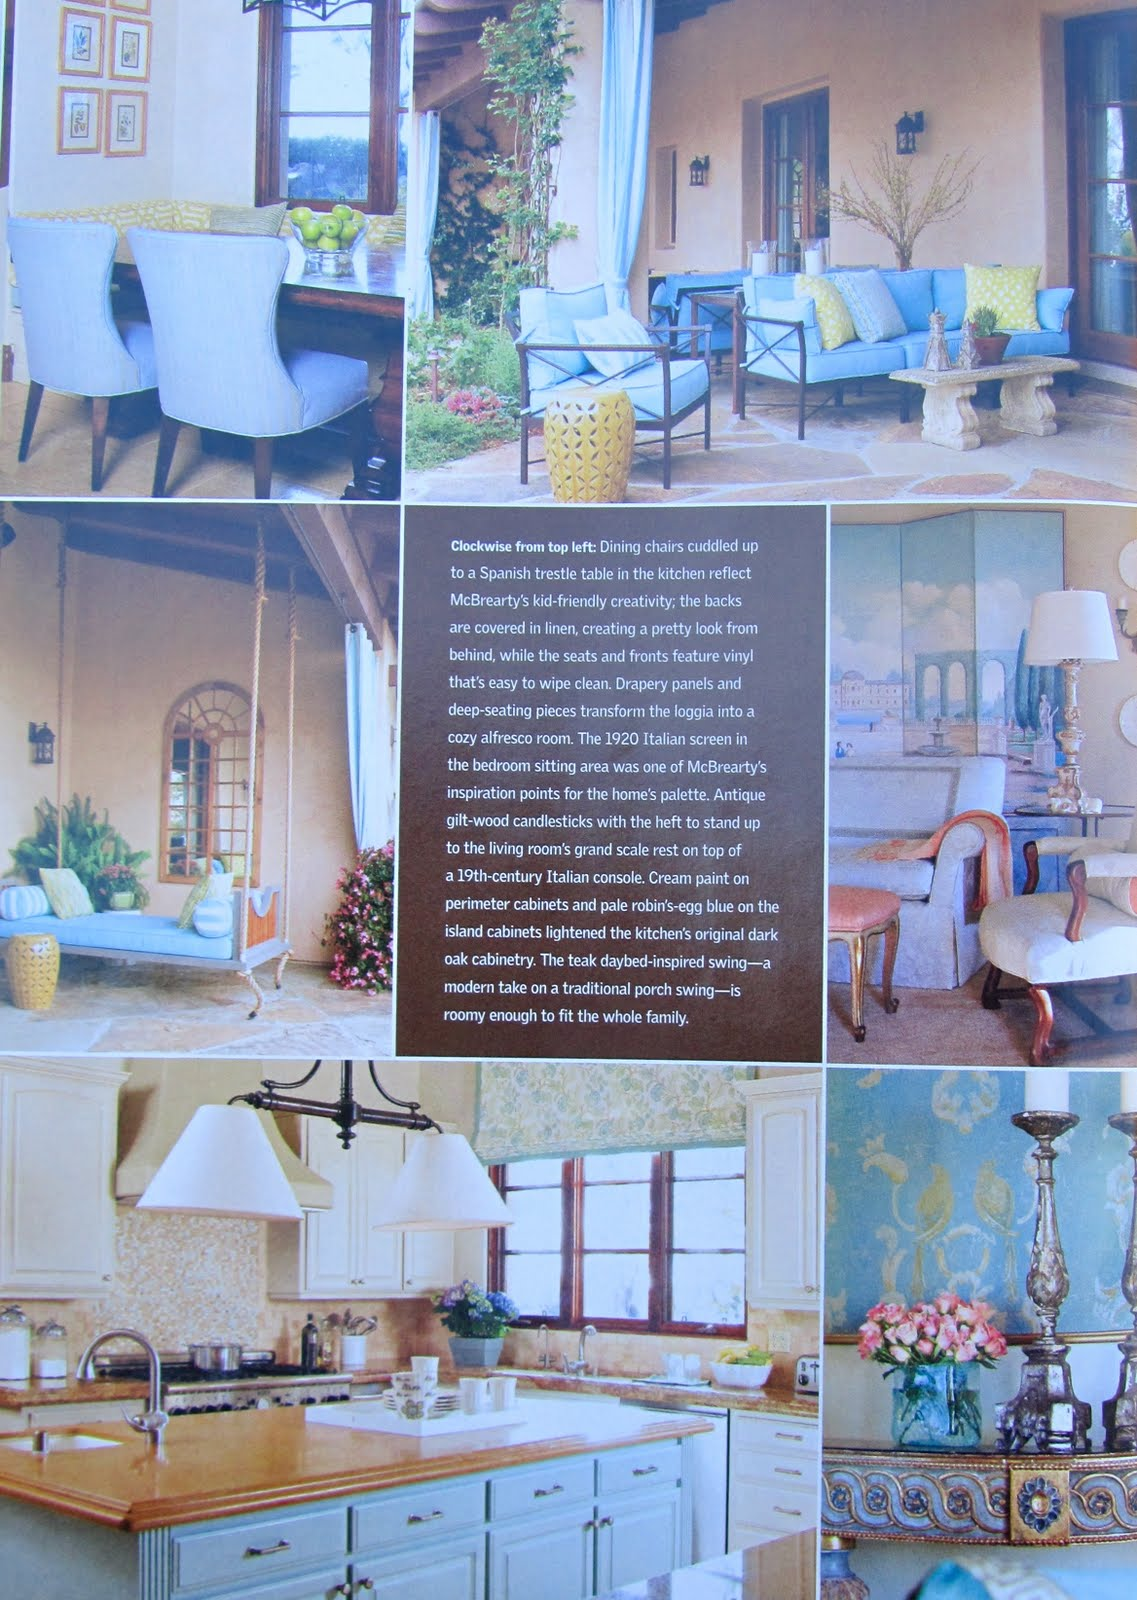 art house design decor magazine fall winter 2010 turning just a few pages further i found a los angeles home designed by windsor smith i fell completely for the kitchen and the master bath she designed